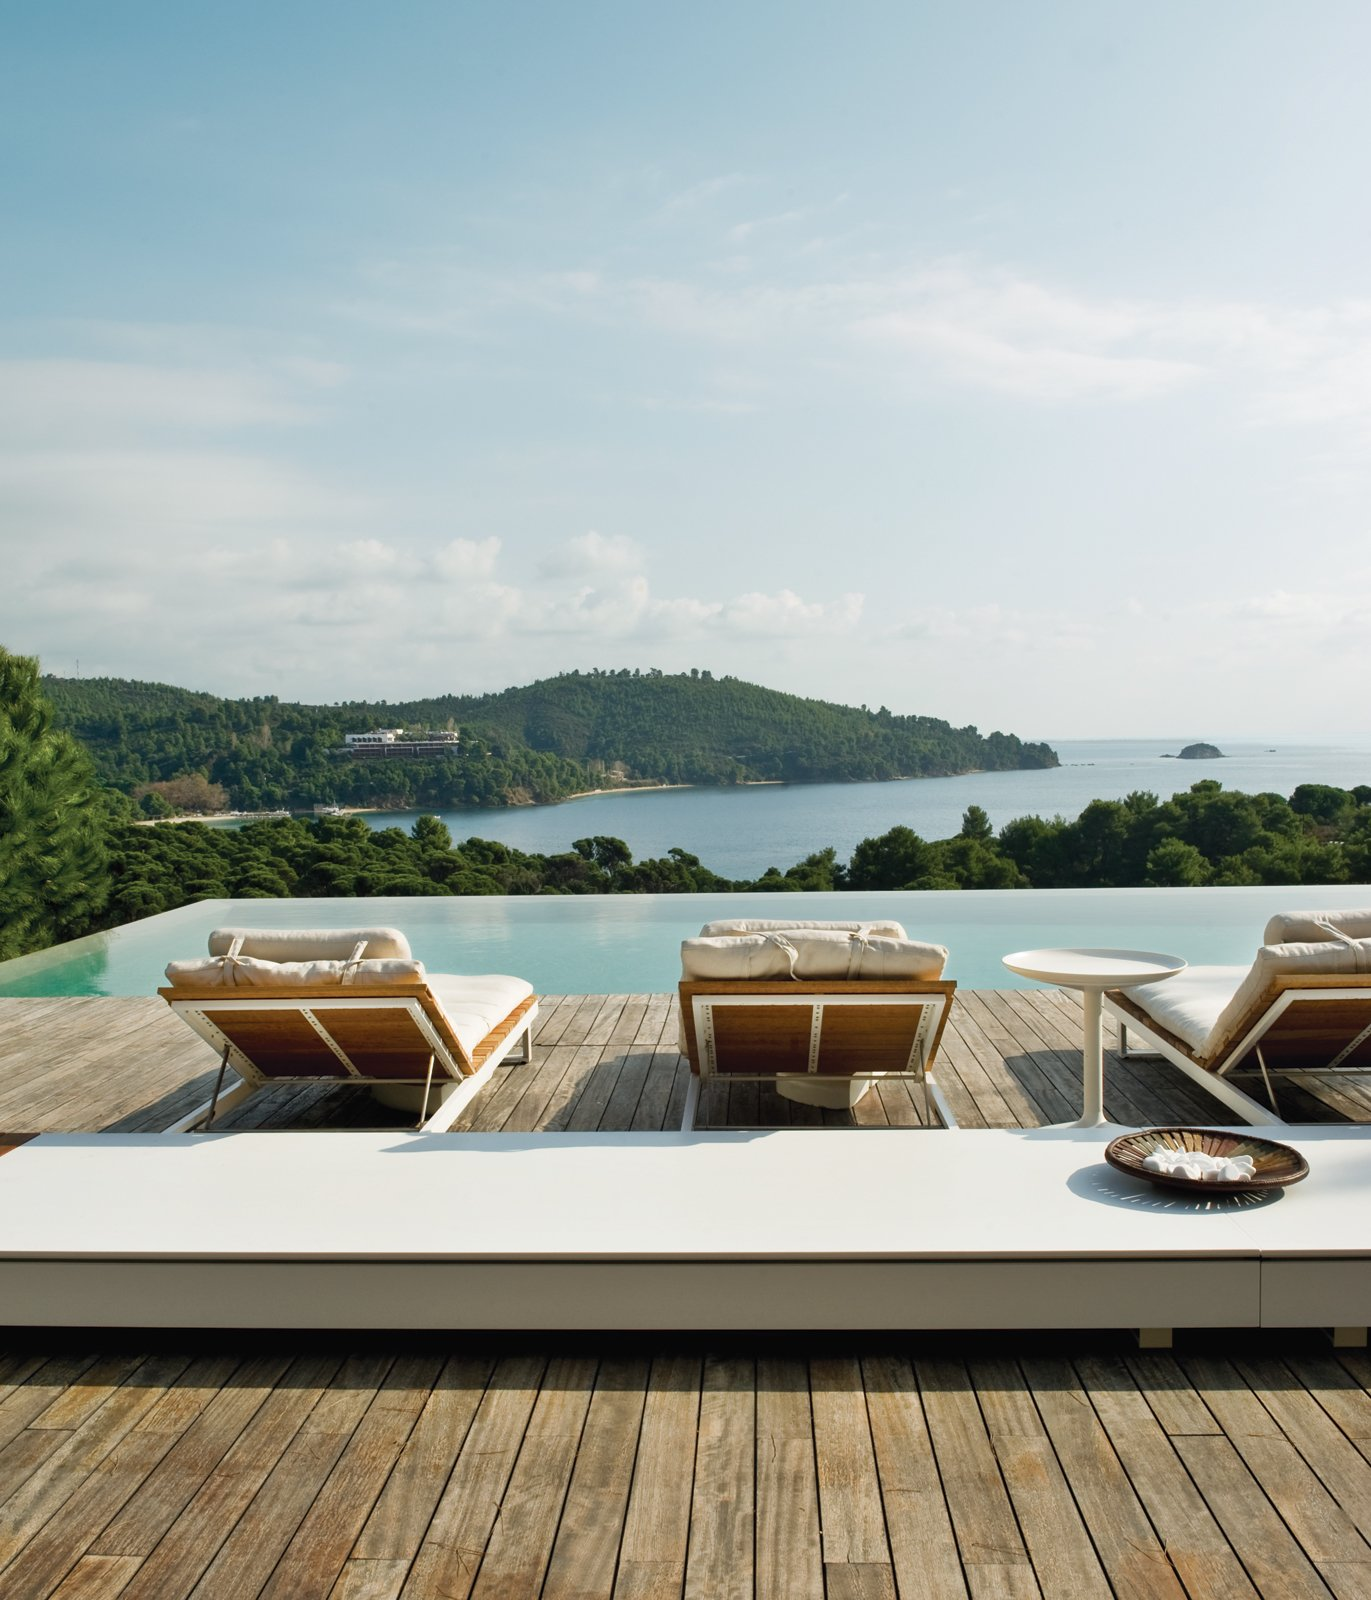 Made from white aluminum and oiled teak, the wooden sun loungers are from Viteo's Pure collection. The long low table is made of Corian by DuPont and comes from the same line of outdoor furniture.  Photo 10 of 13 in An Idyllic Vacation Home in Greece